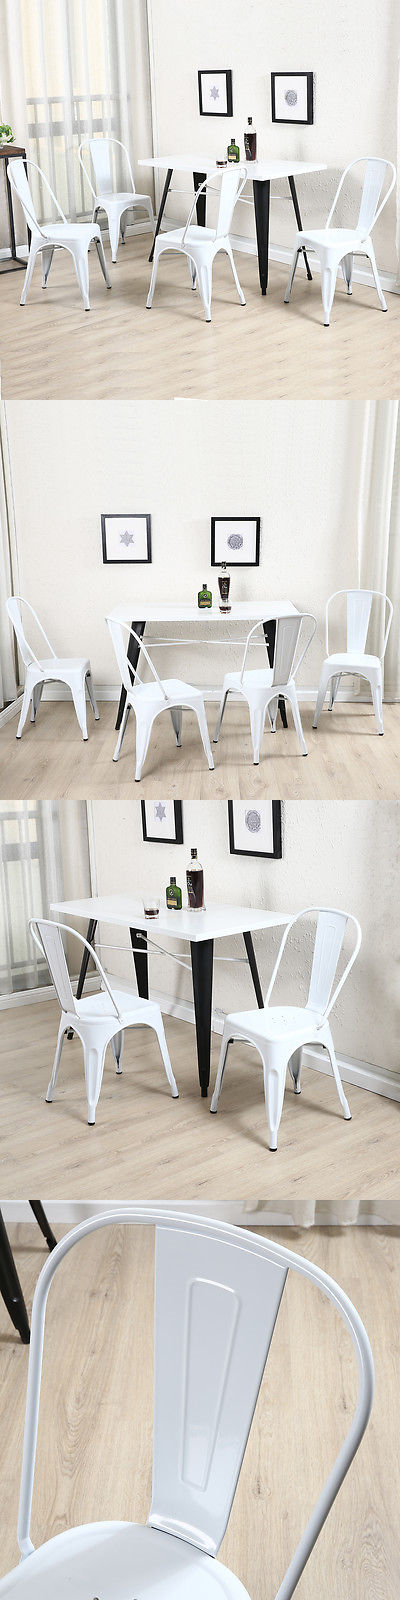 Bar Stools 153928: Vintage Style Bar Chair Set Of (4) White Chairs Bistro Dining Cafe Stacking -> BUY IT NOW ONLY: $149.99 on eBay!